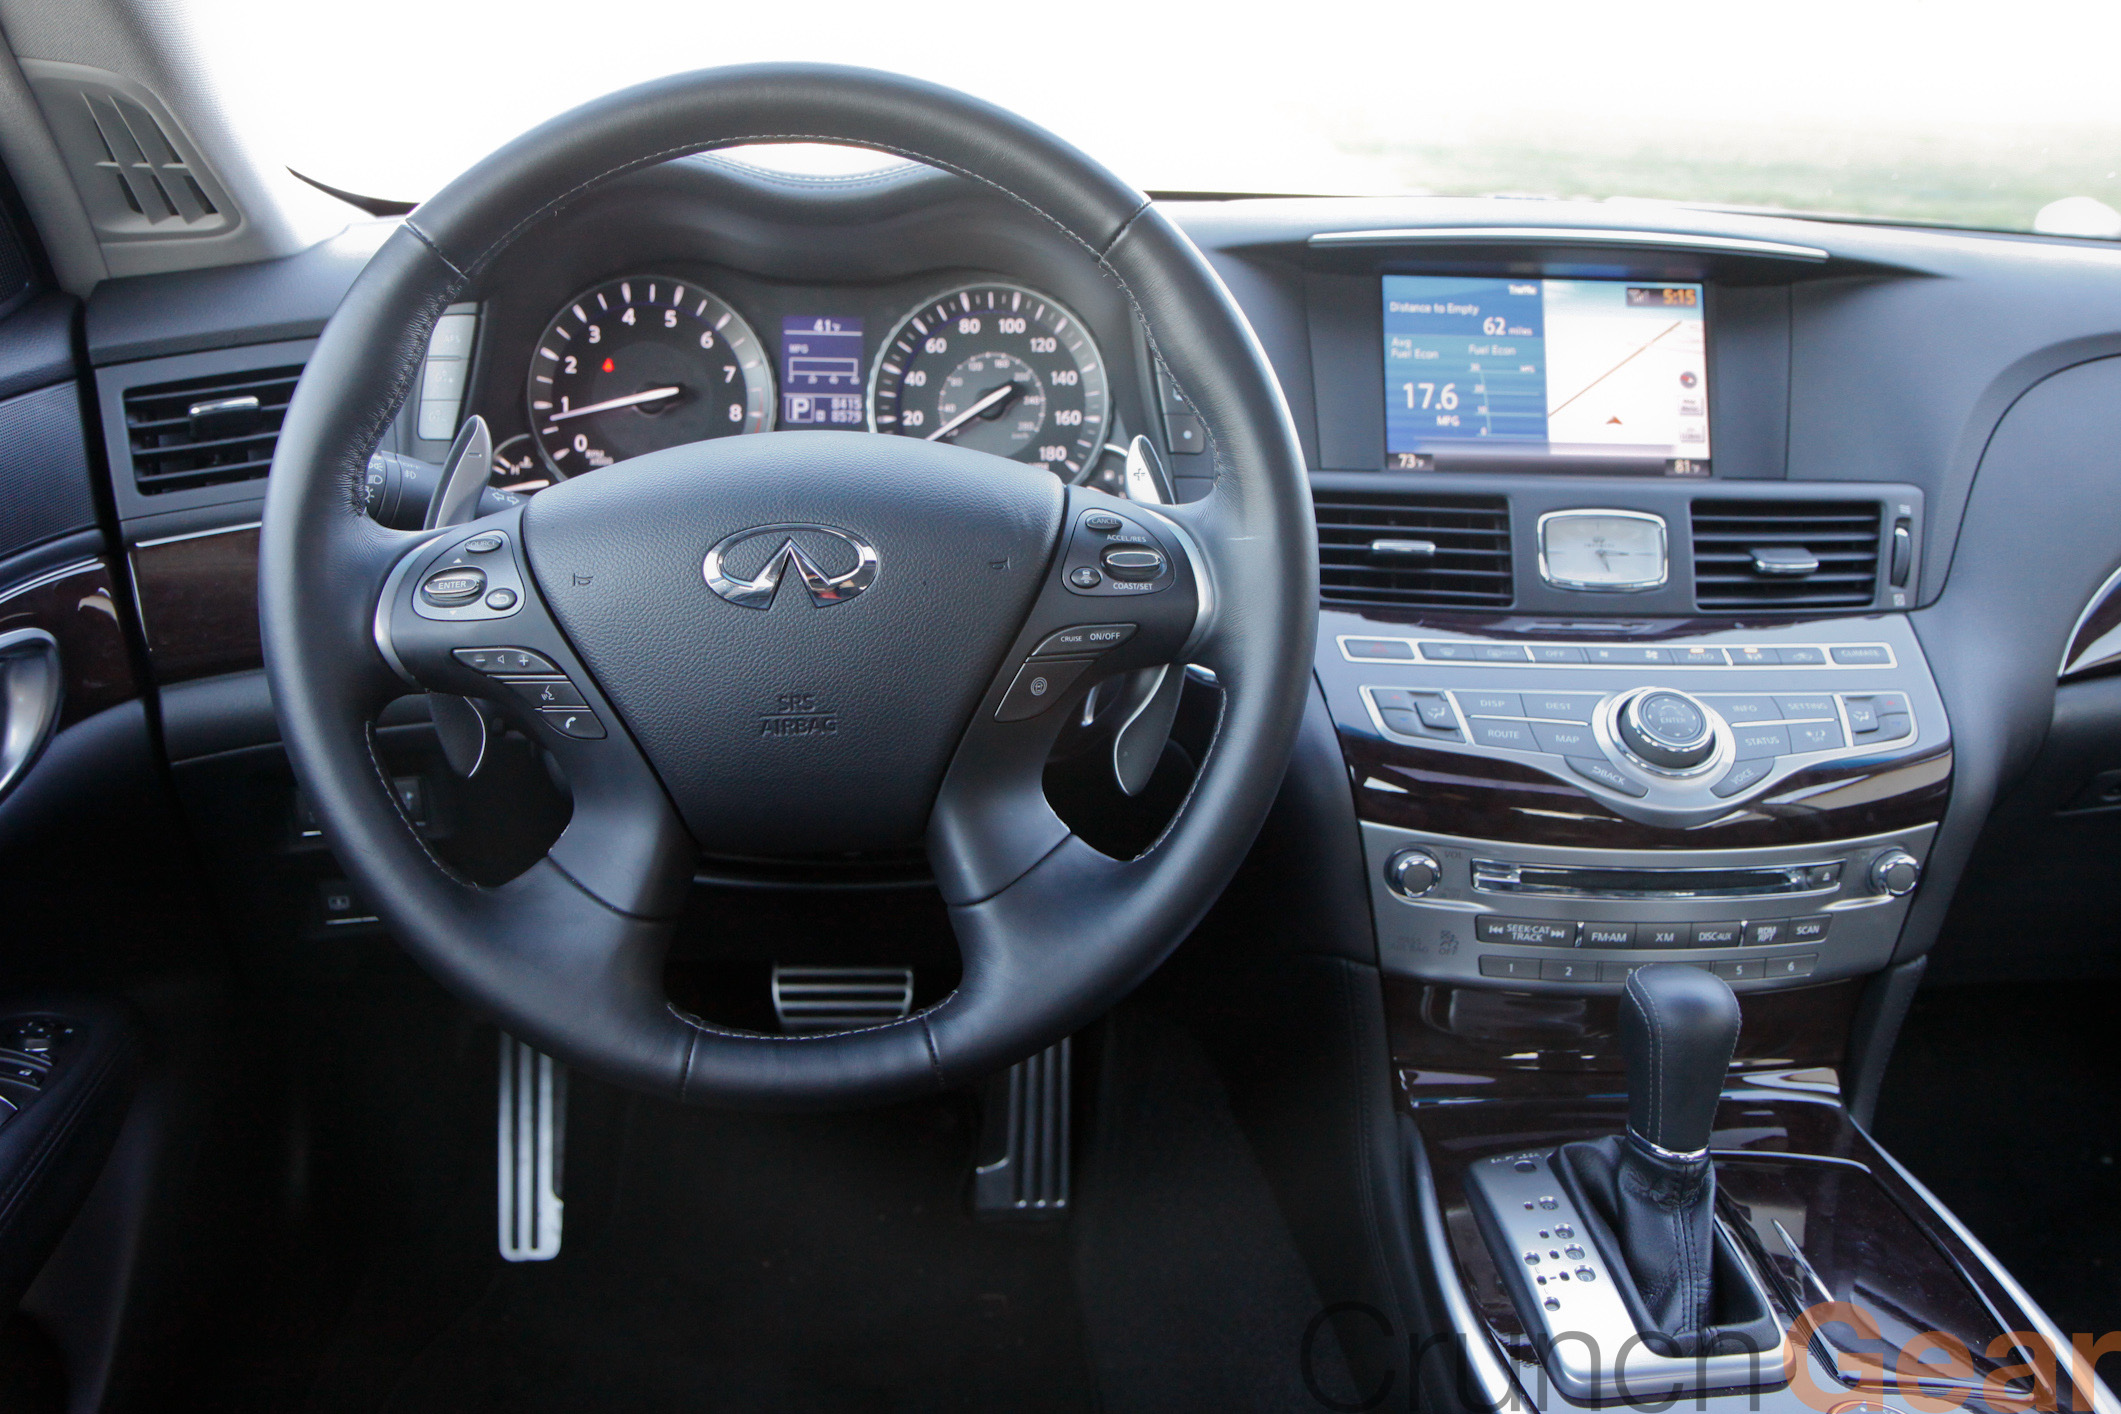 2011 Infiniti M37s The Limit As Car Electronics Approach Infinity